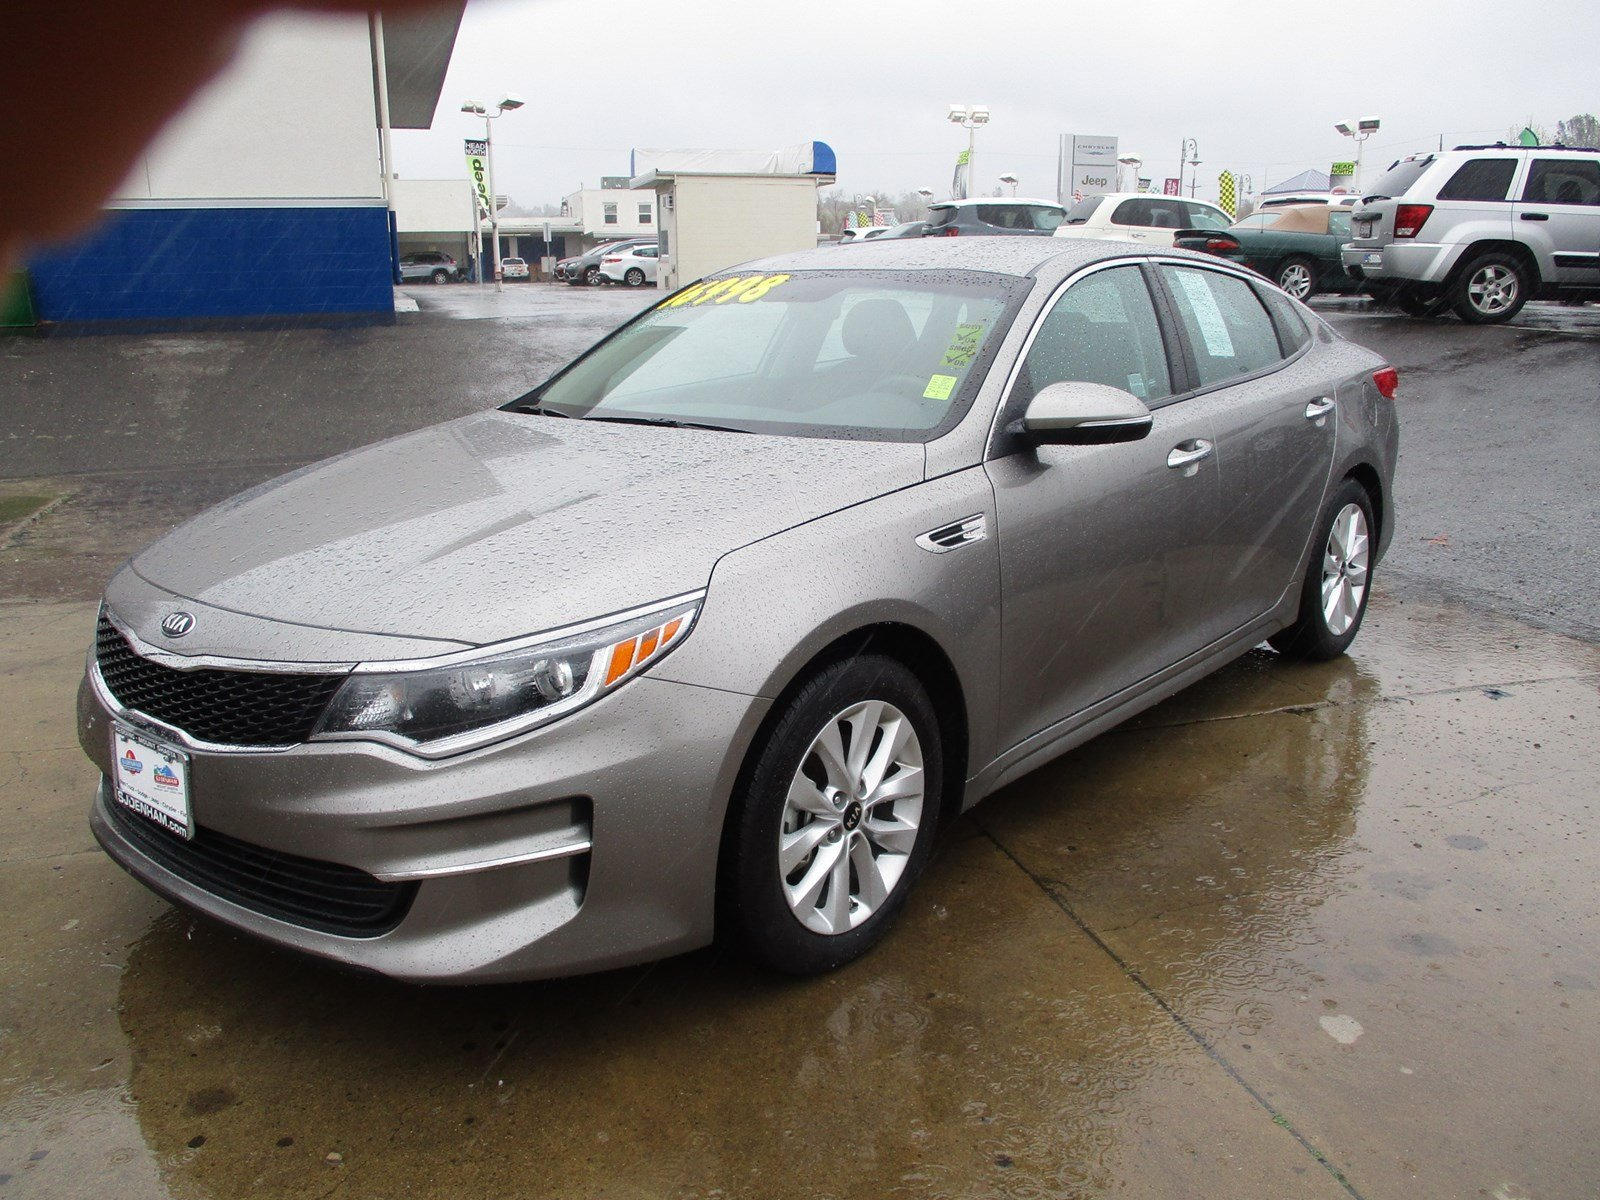 for kia norman optima ok boomer near sale cc